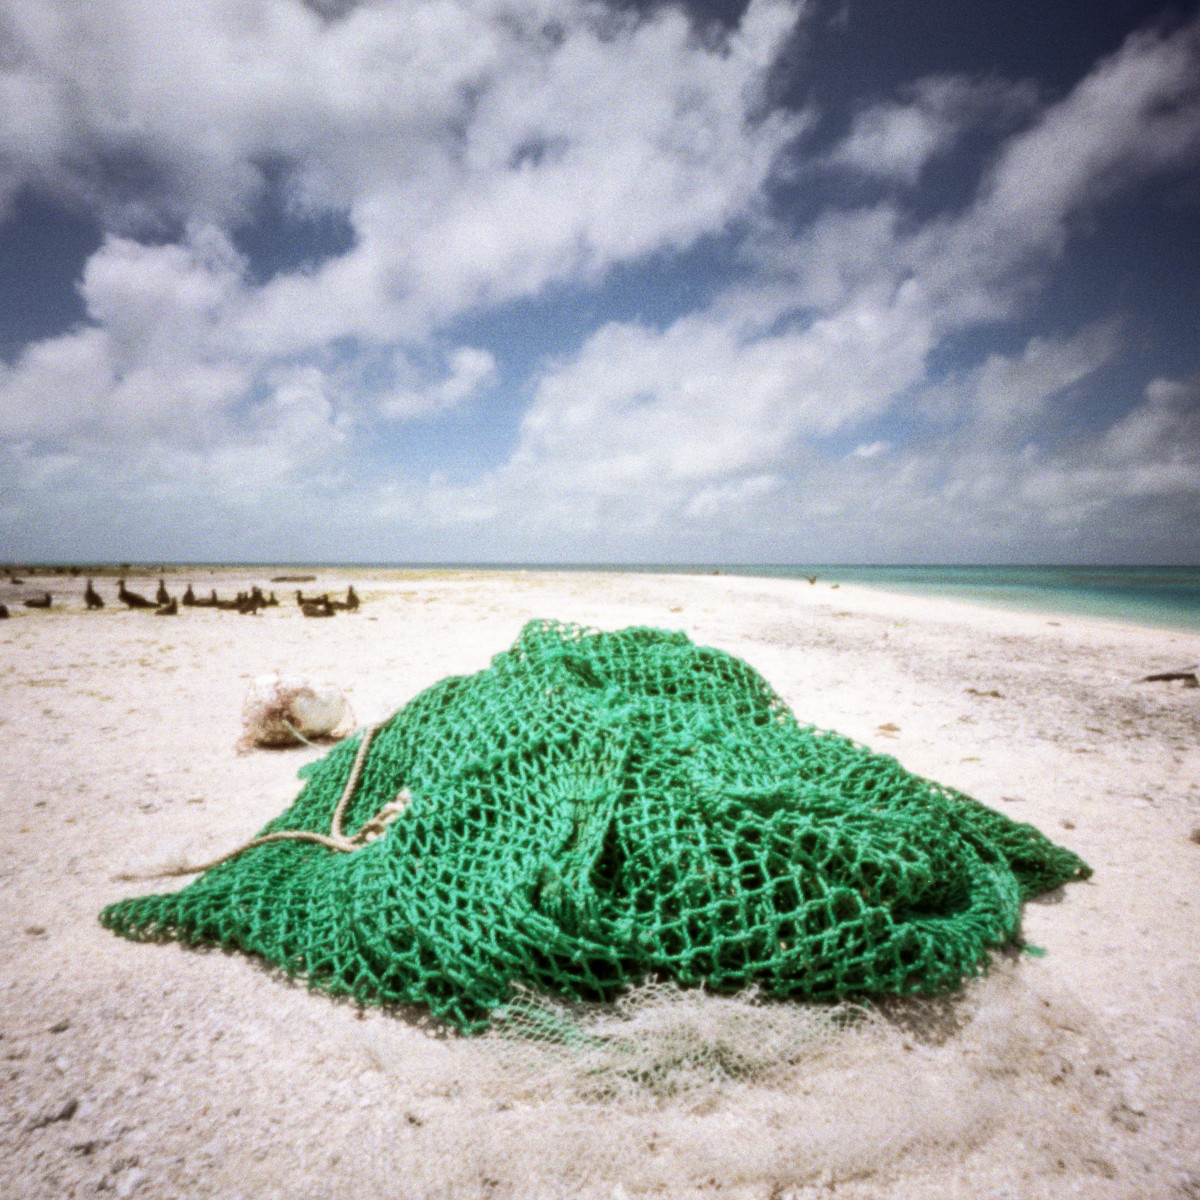 A photo of a large green fishing net in a heap on the beach.